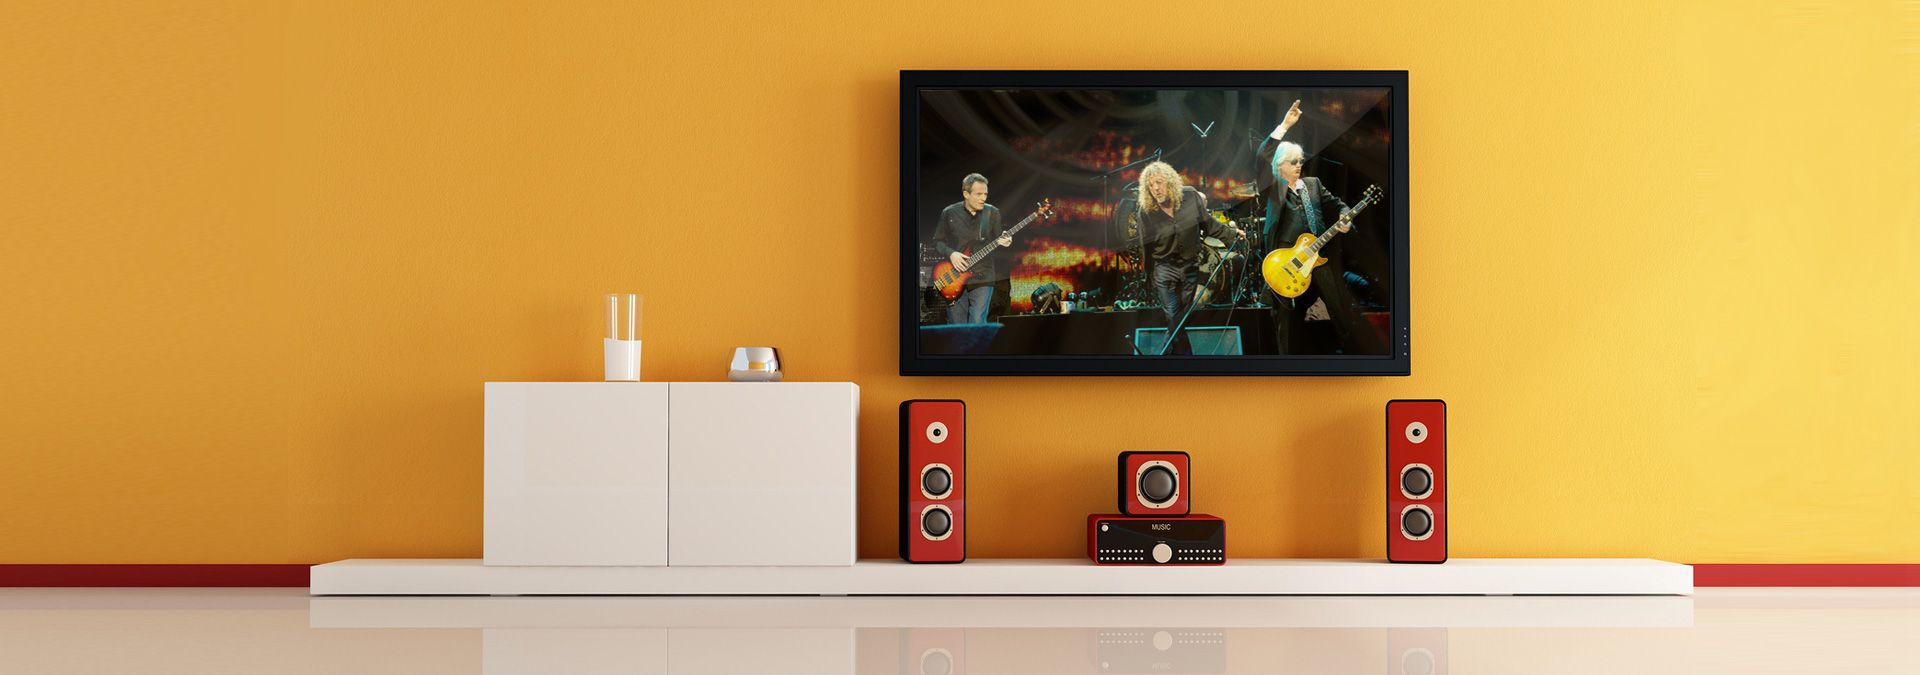 Complete control of your entertainment systems